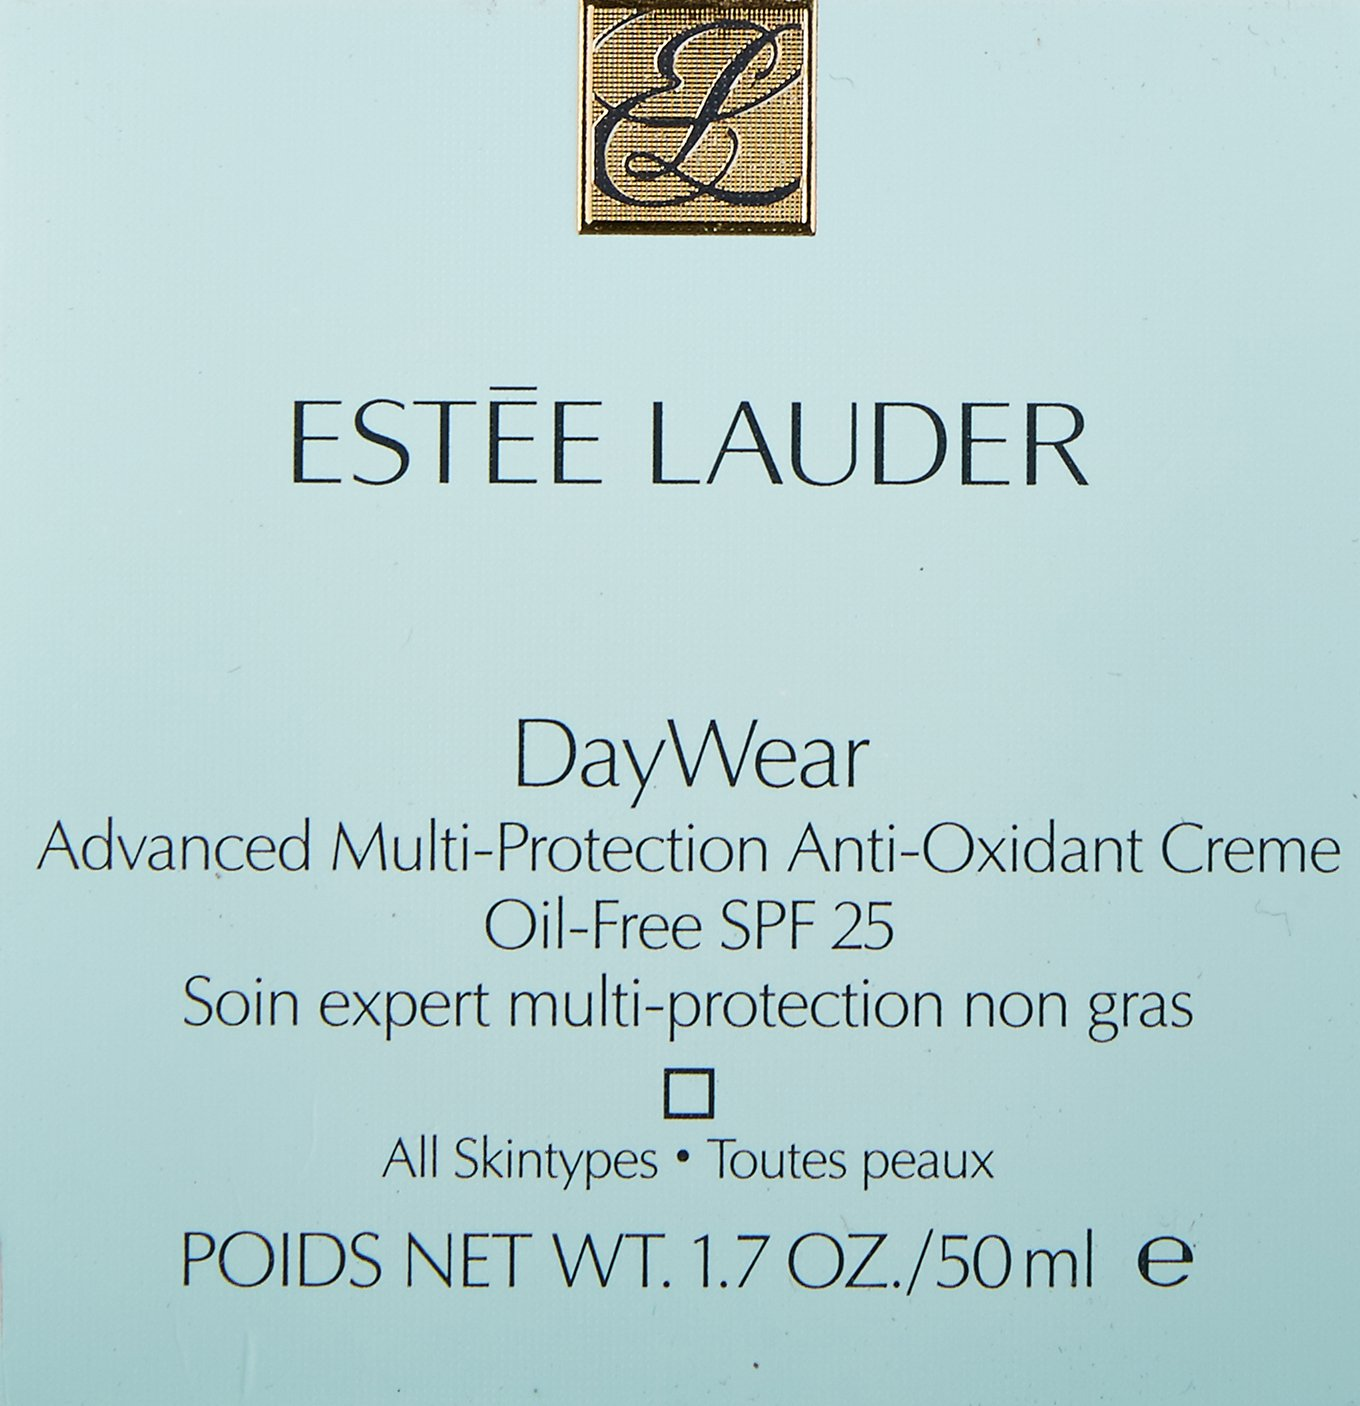 Amazon.com : Estee Lauder Daywear Advanced Multi Protection Anti ...